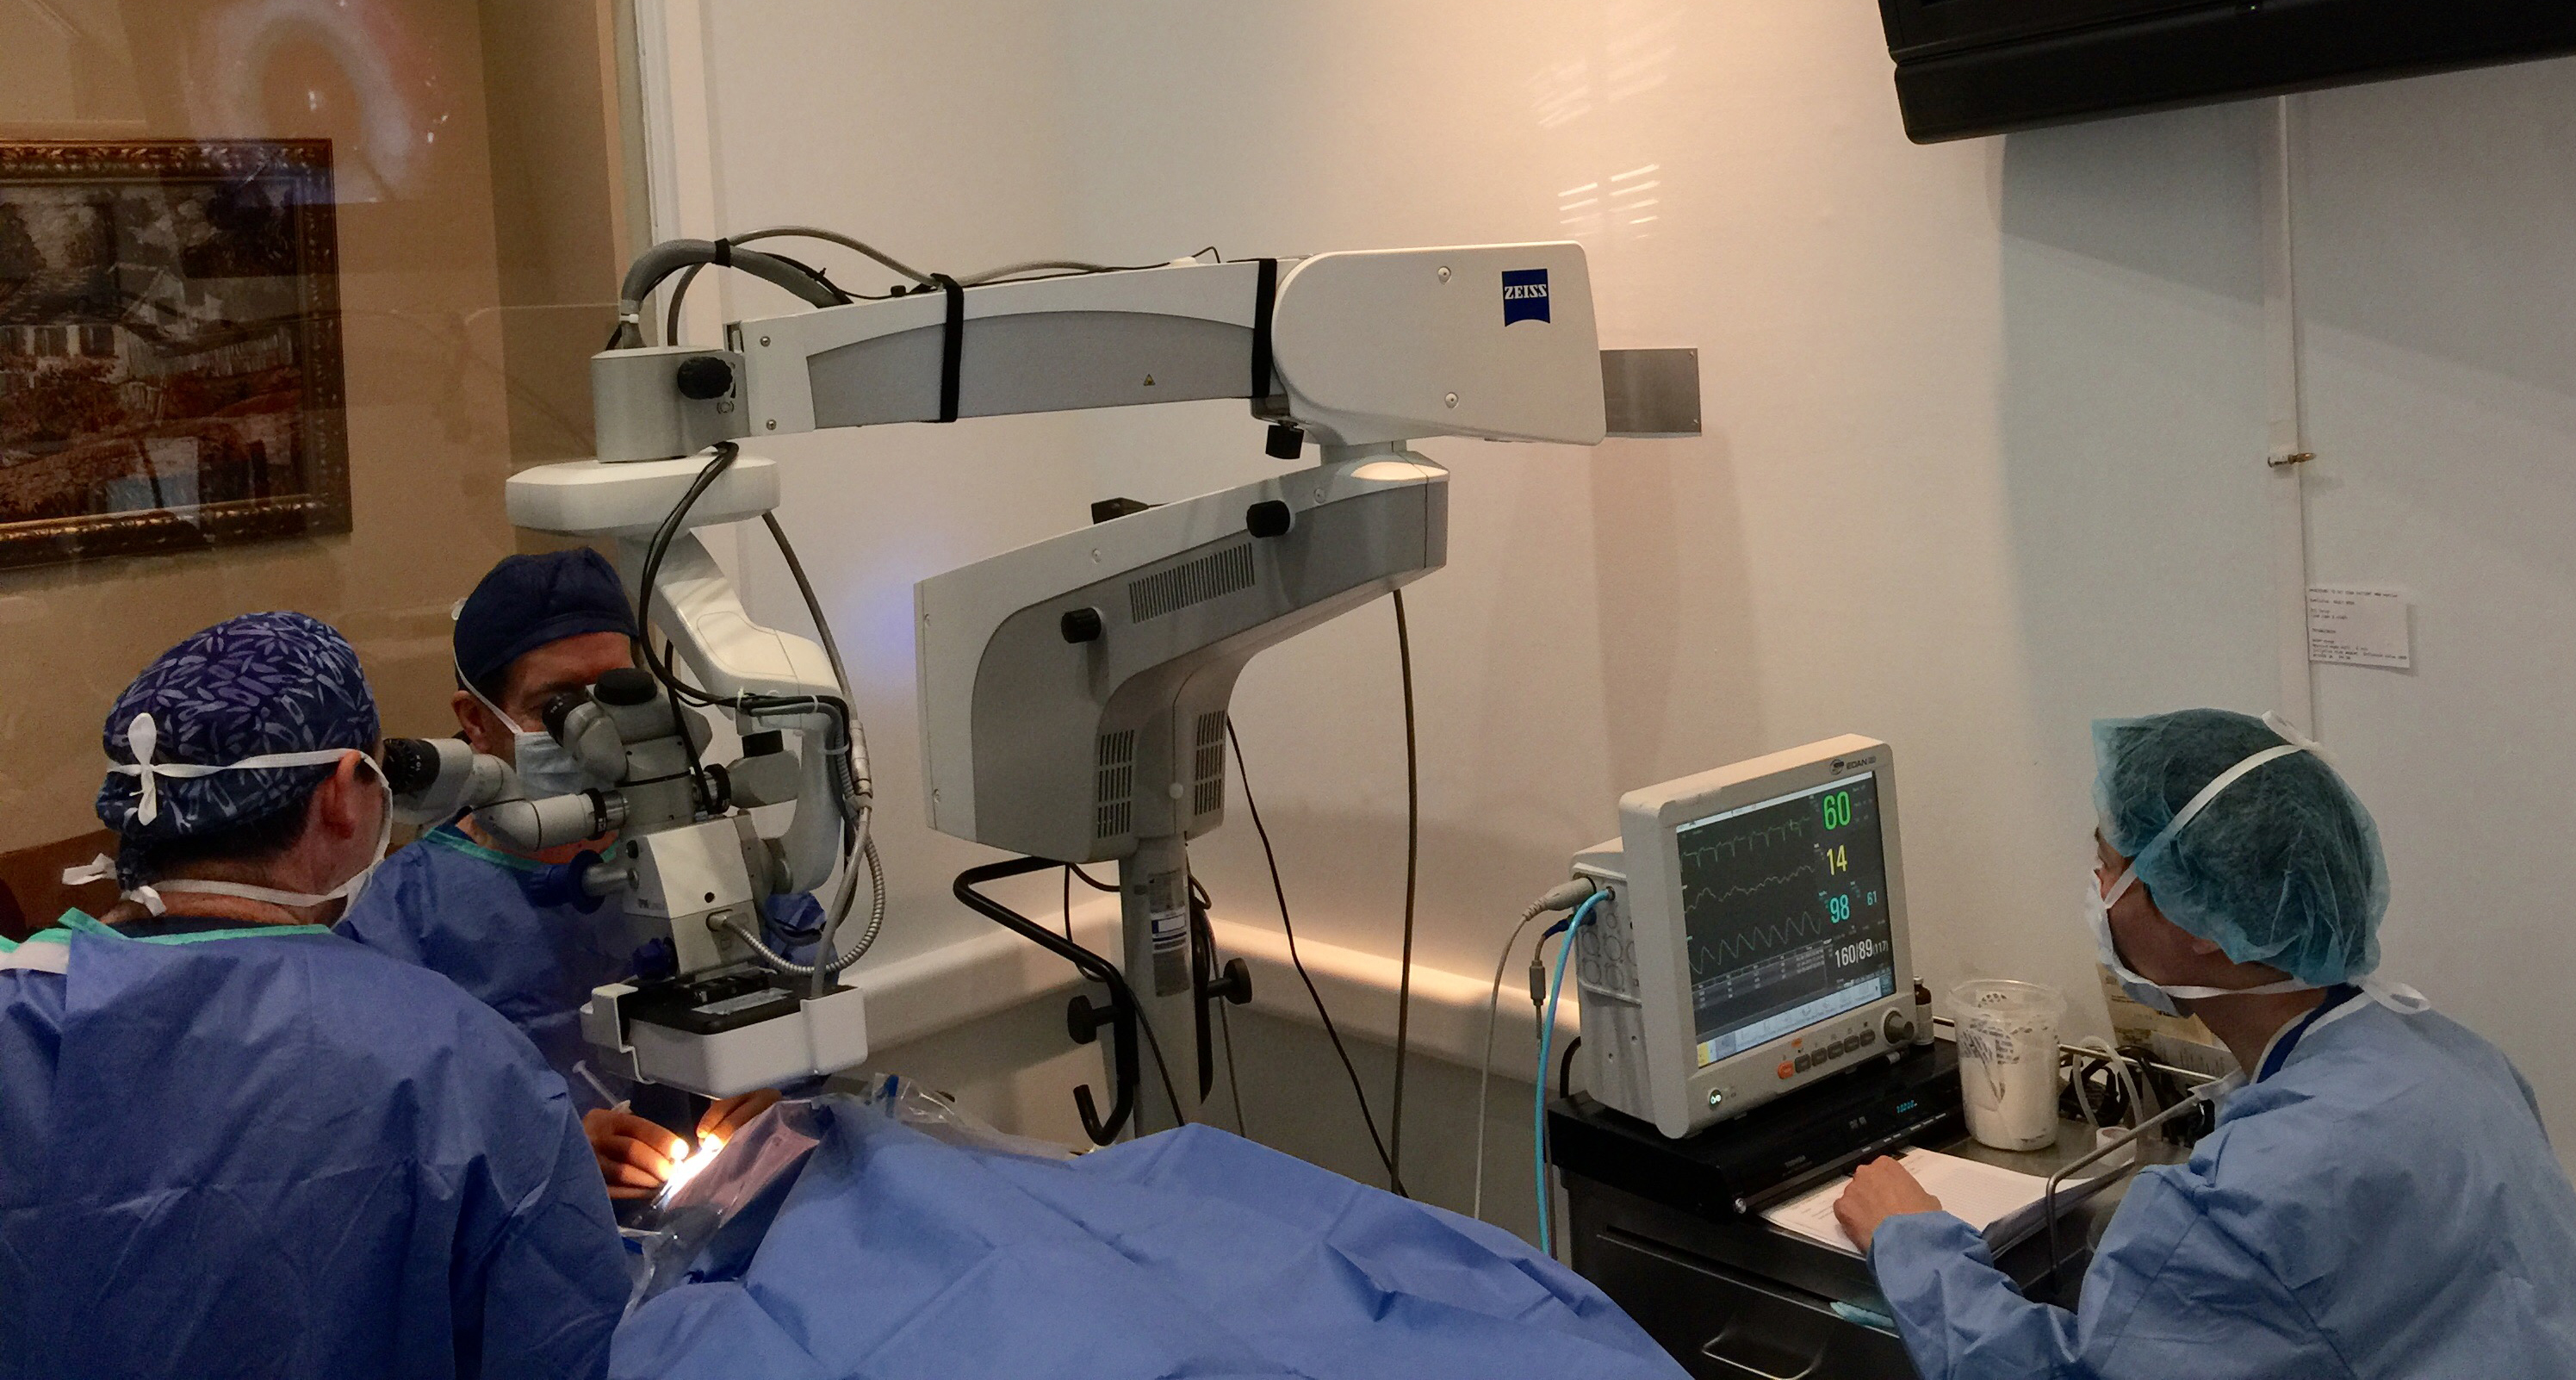 Cataract eye surgery performed at Bochner Eye Institute in Toronto